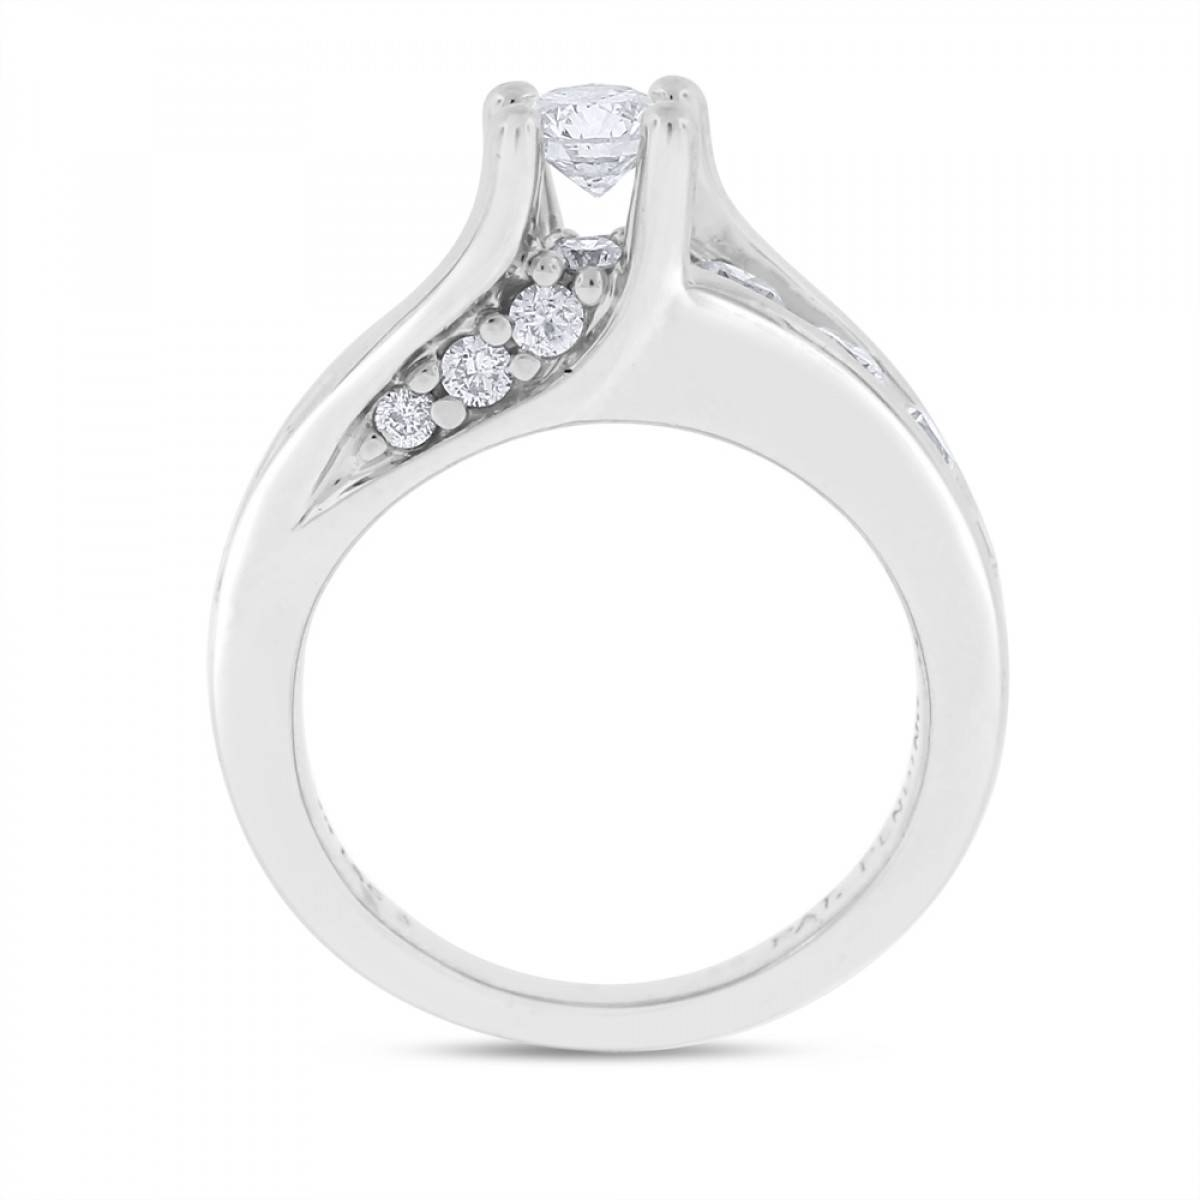 1.53 Ct. Natural Floating Diamond Engagement Ring Solid 14K White Gold For Floating Diamond Engagement Rings (Gallery 1 of 15)